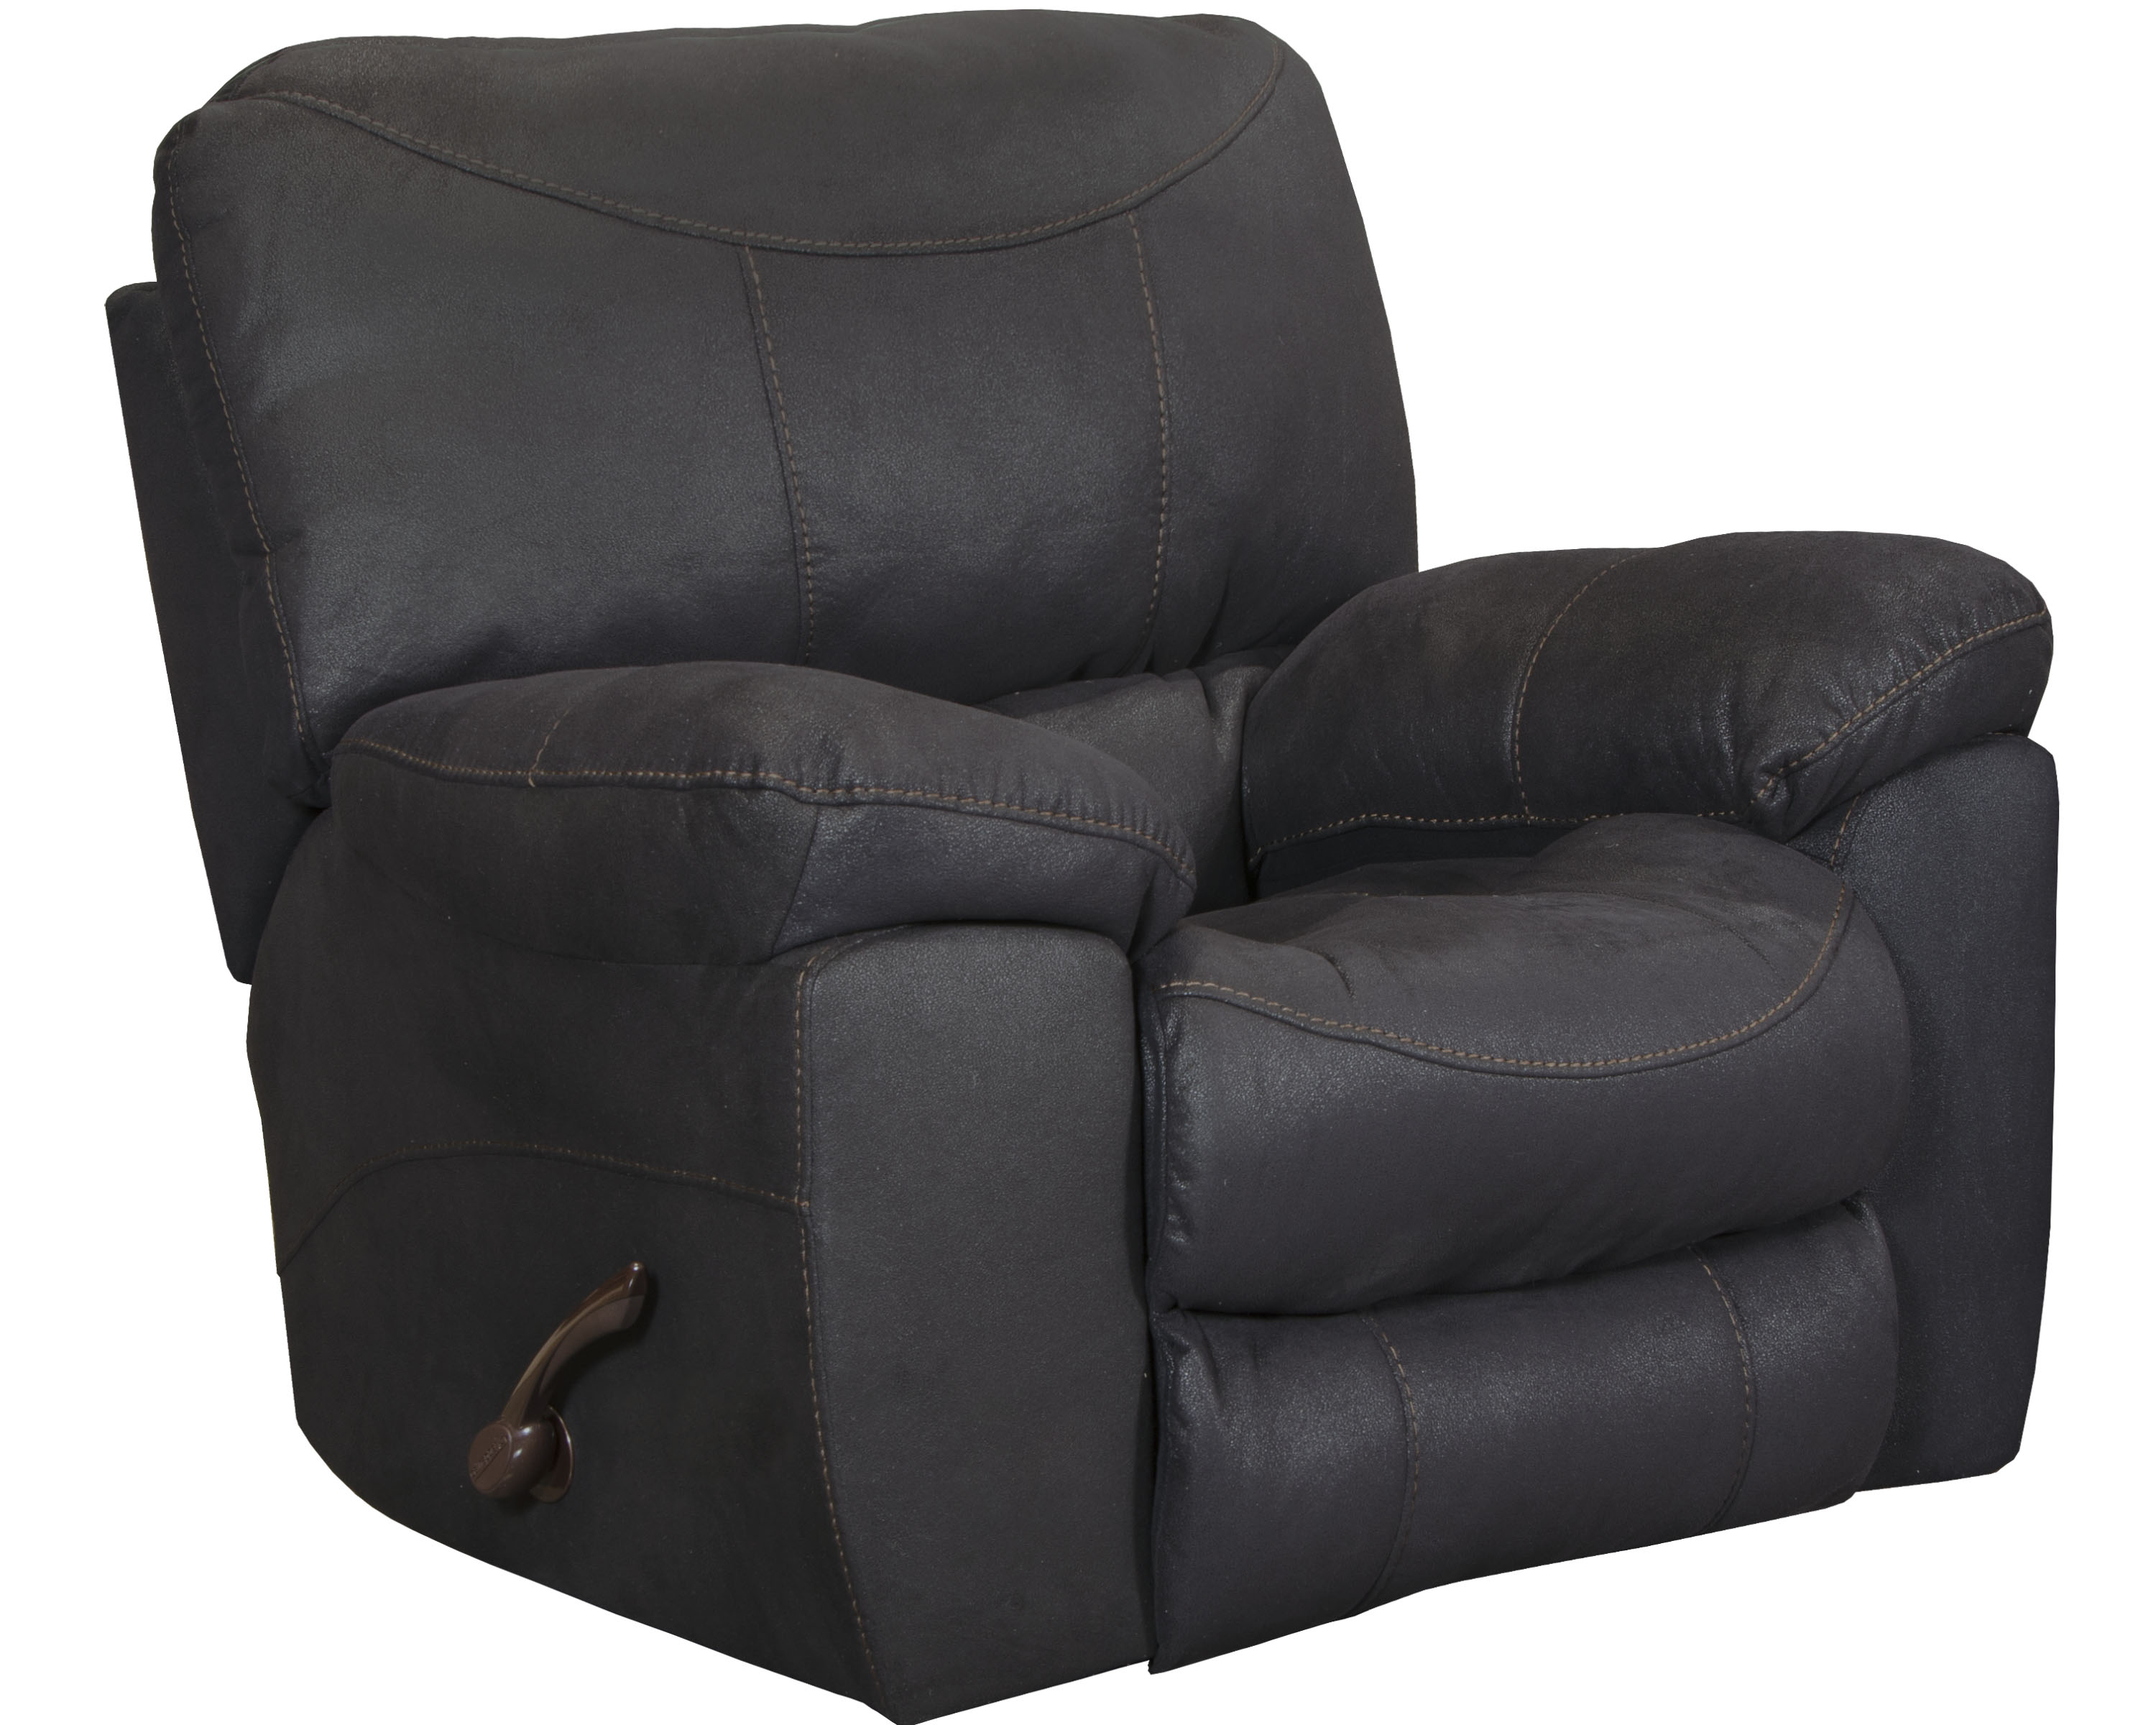 Terrance Black Rocker Recliner by Catnapper®